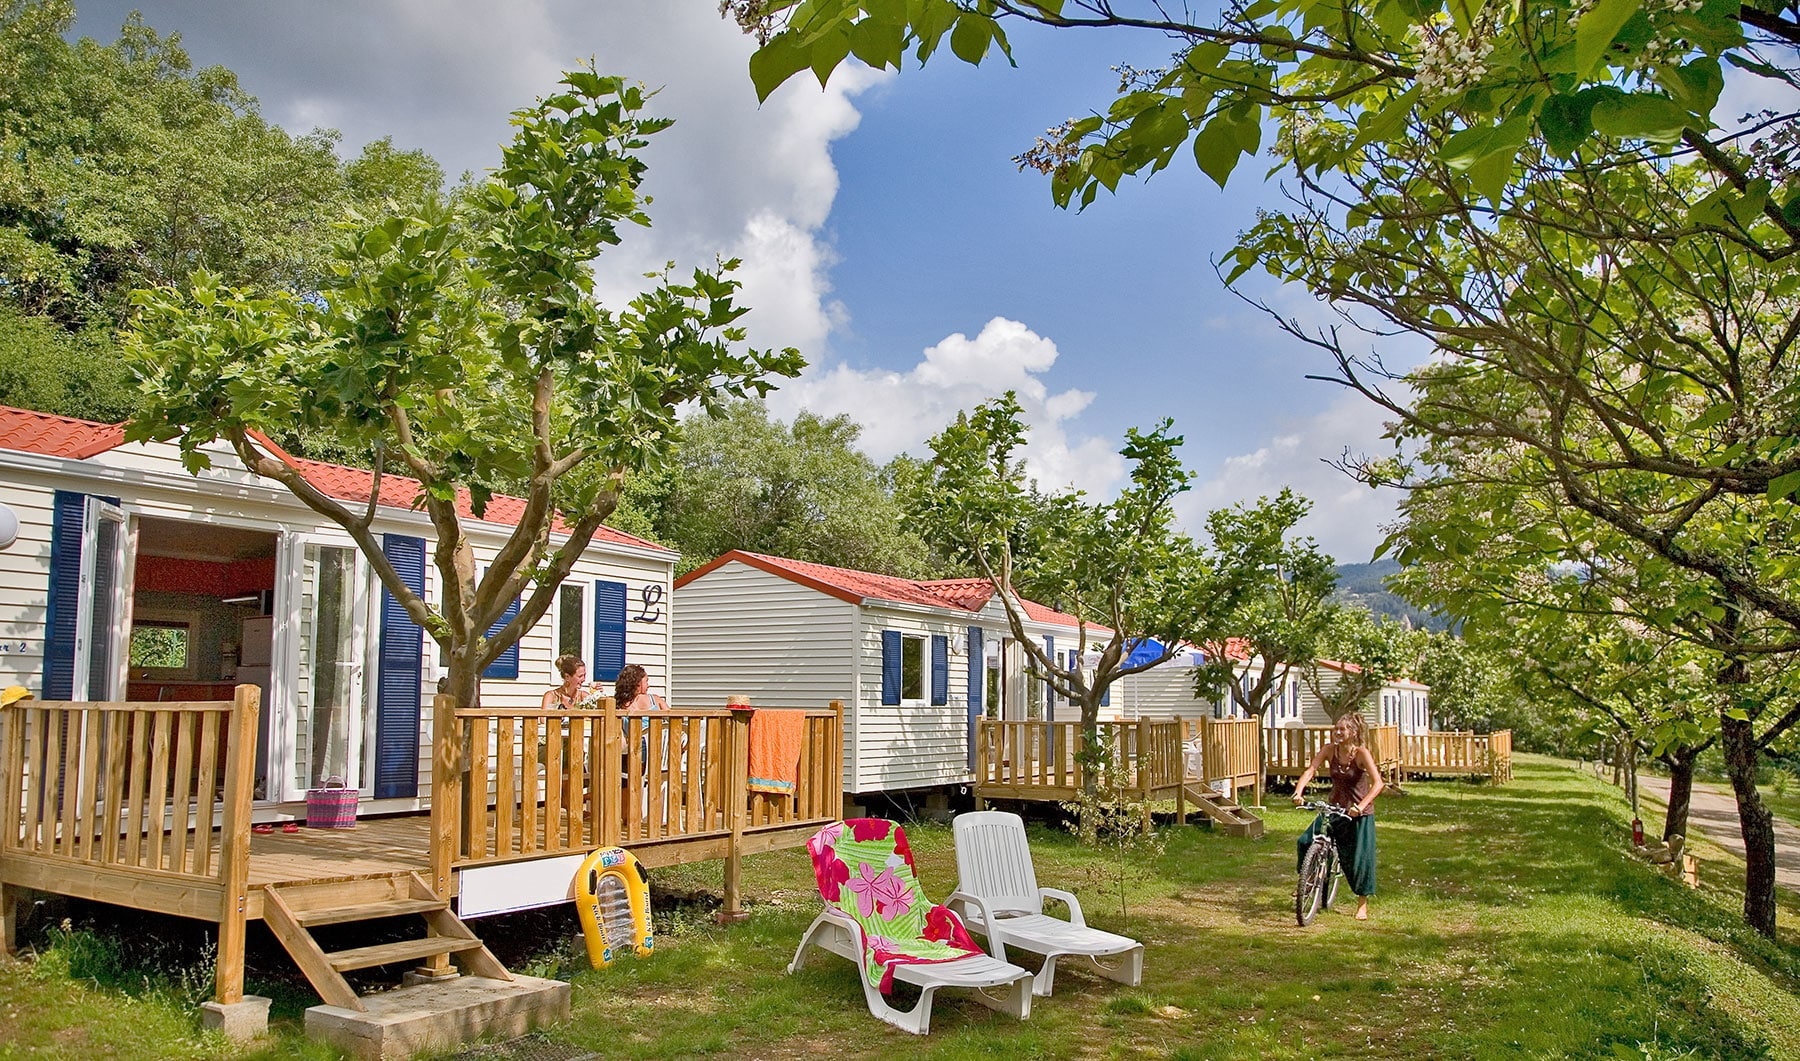 Location Vacances Camping 4 Star Campsite In Privas Weekends And Holidays In Ardèche